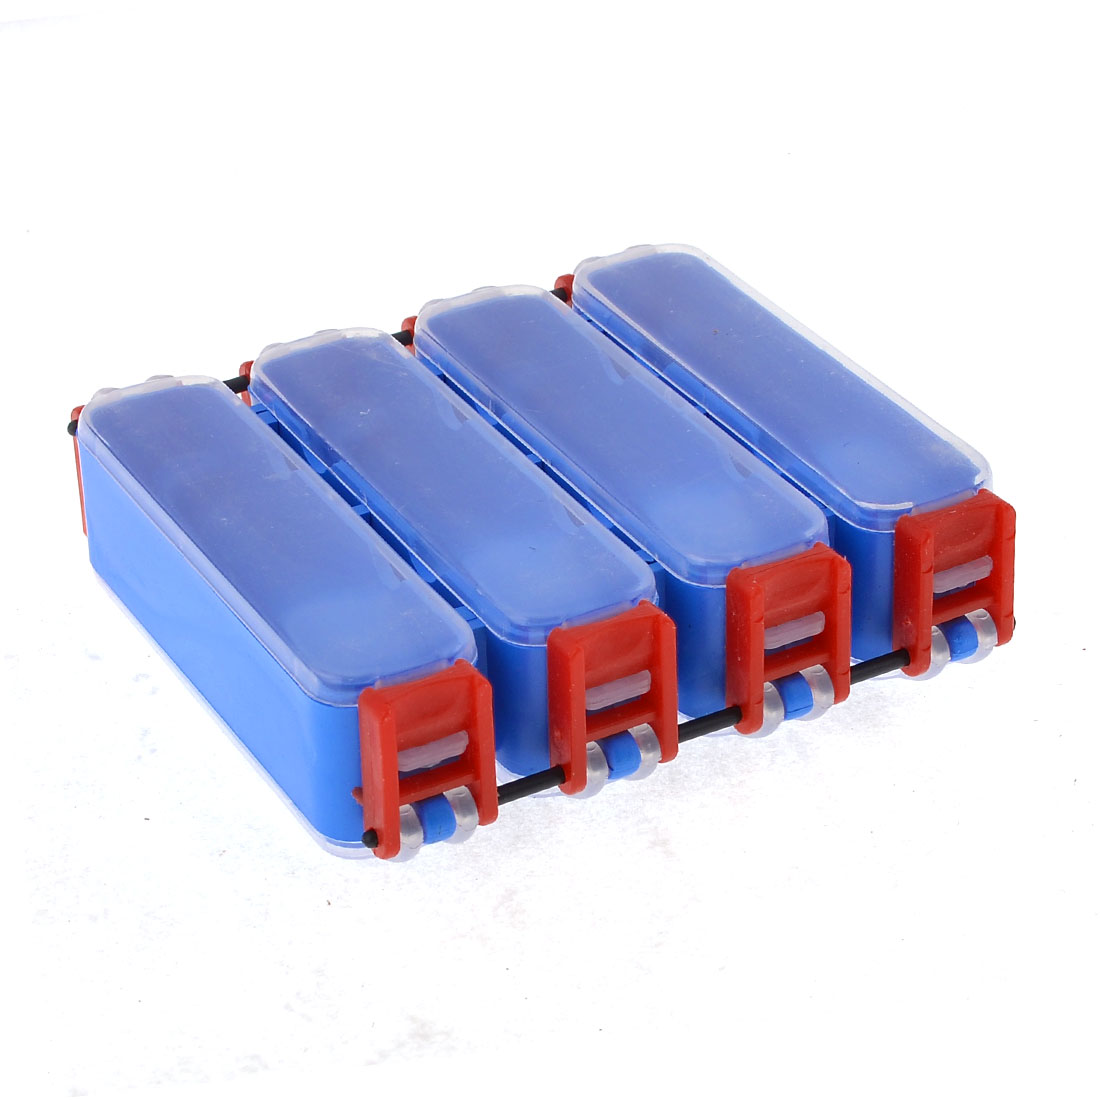 Blue 4 Compartments Fishing Lure Bait Hooks Storage Box Case